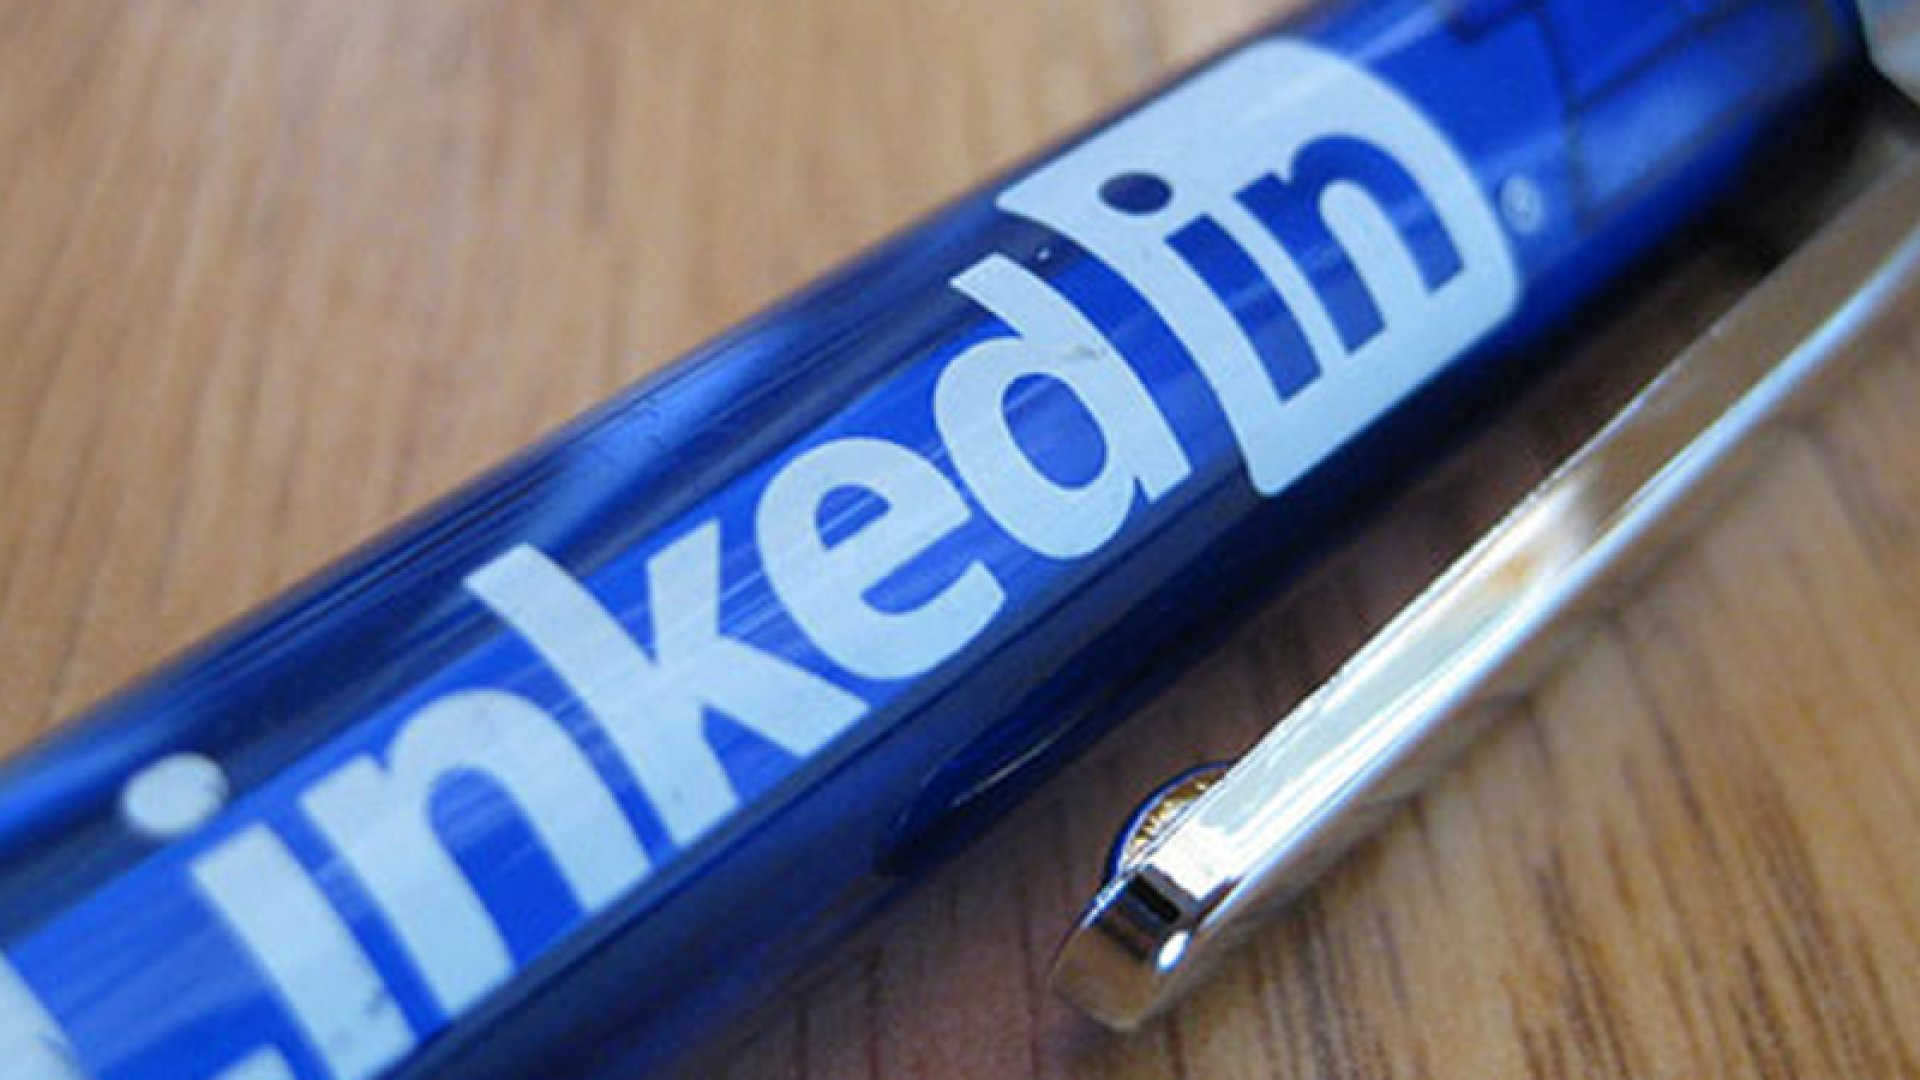 LinkedIn Becomes the Latest Company to Give Its Employees 'Unlimited' Vacation Time